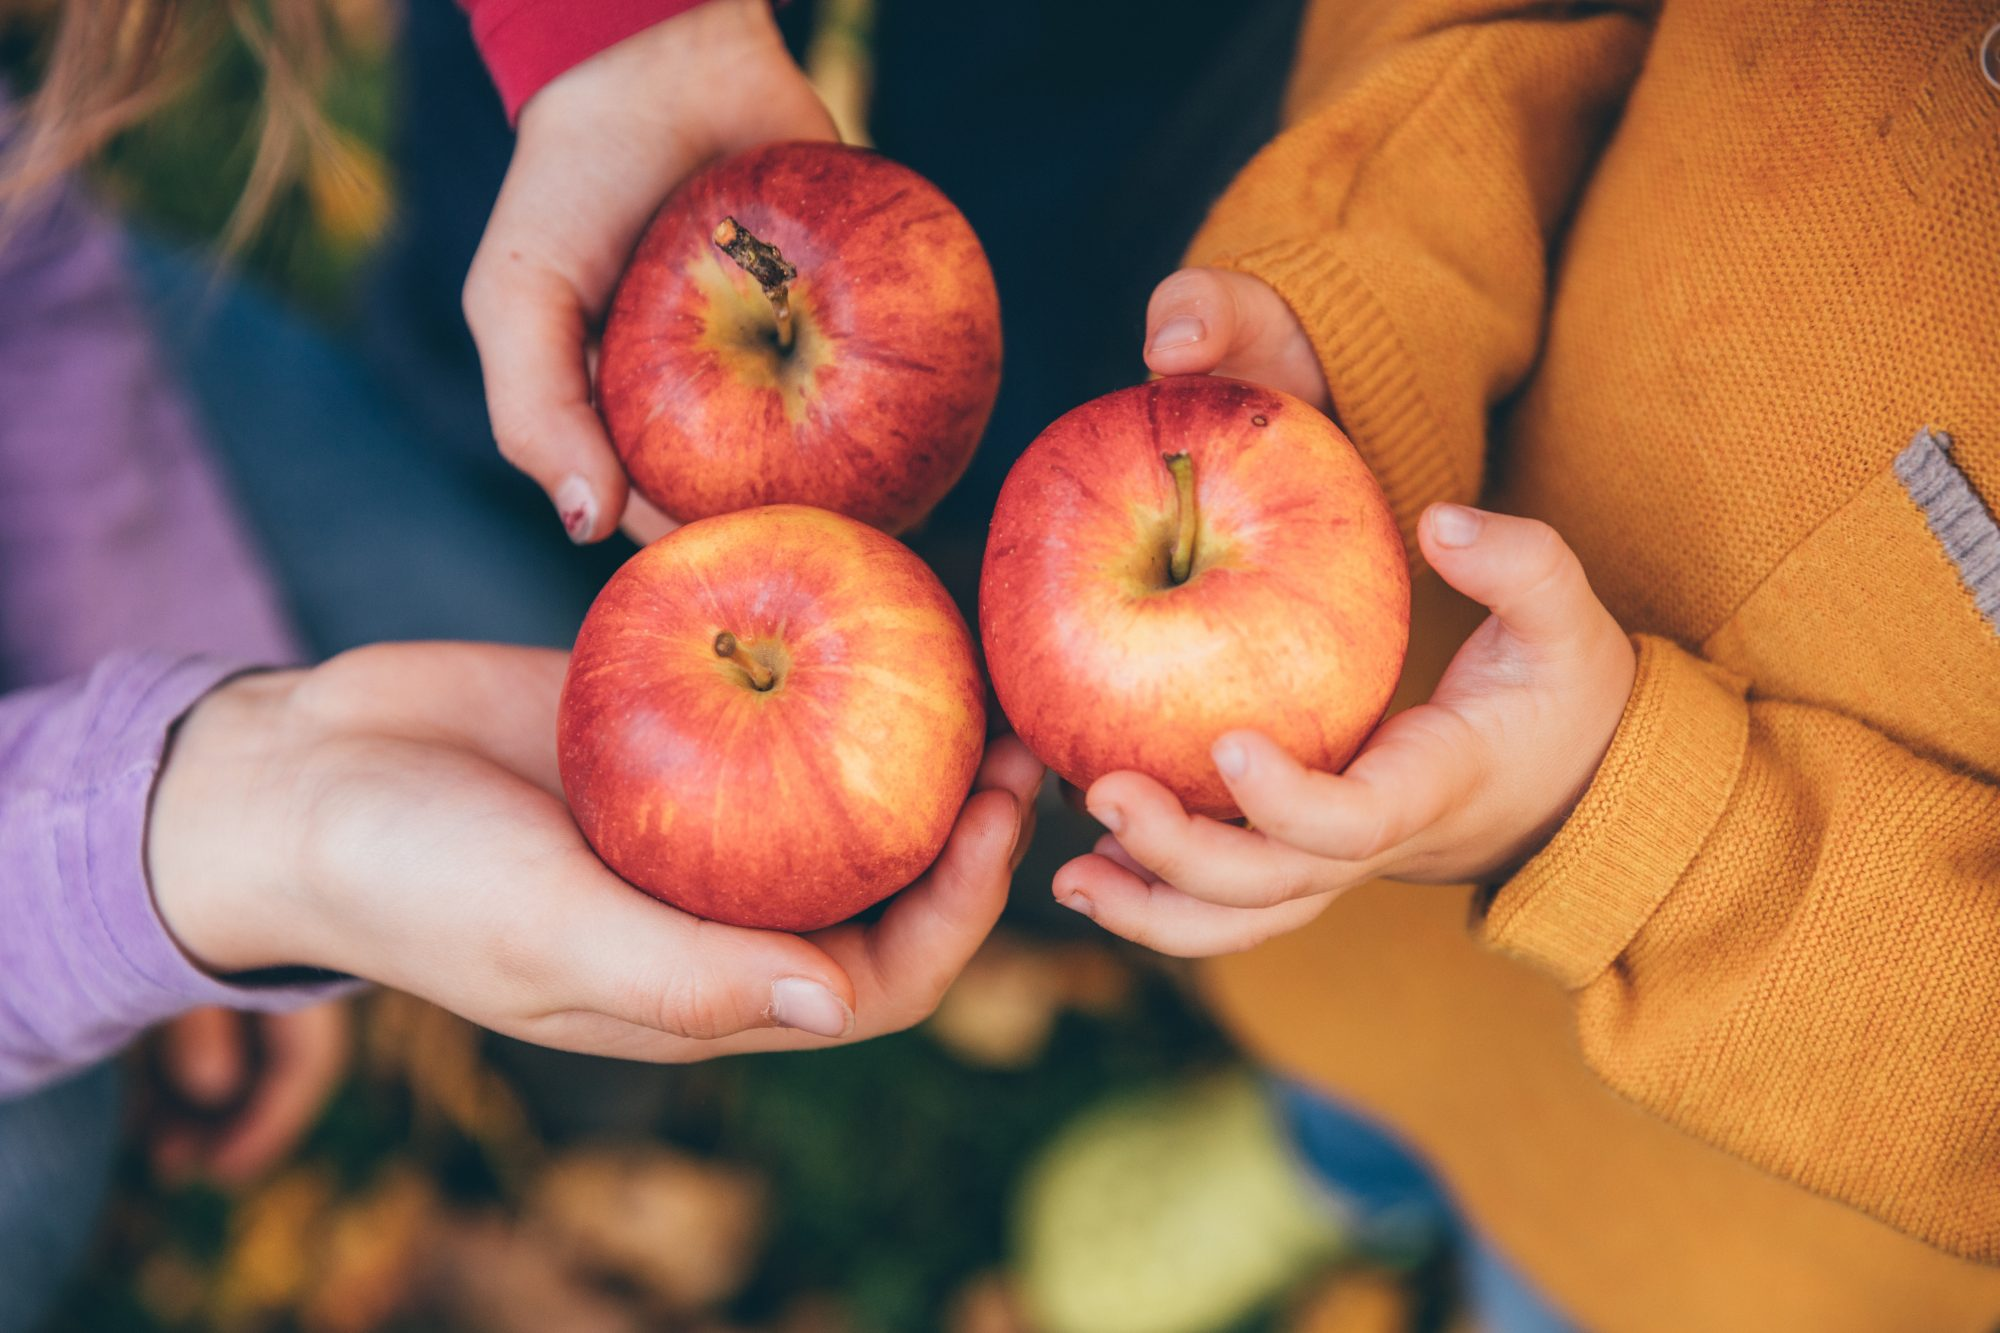 The 50 Best Spots for Apple Picking in the US, According to Yelp